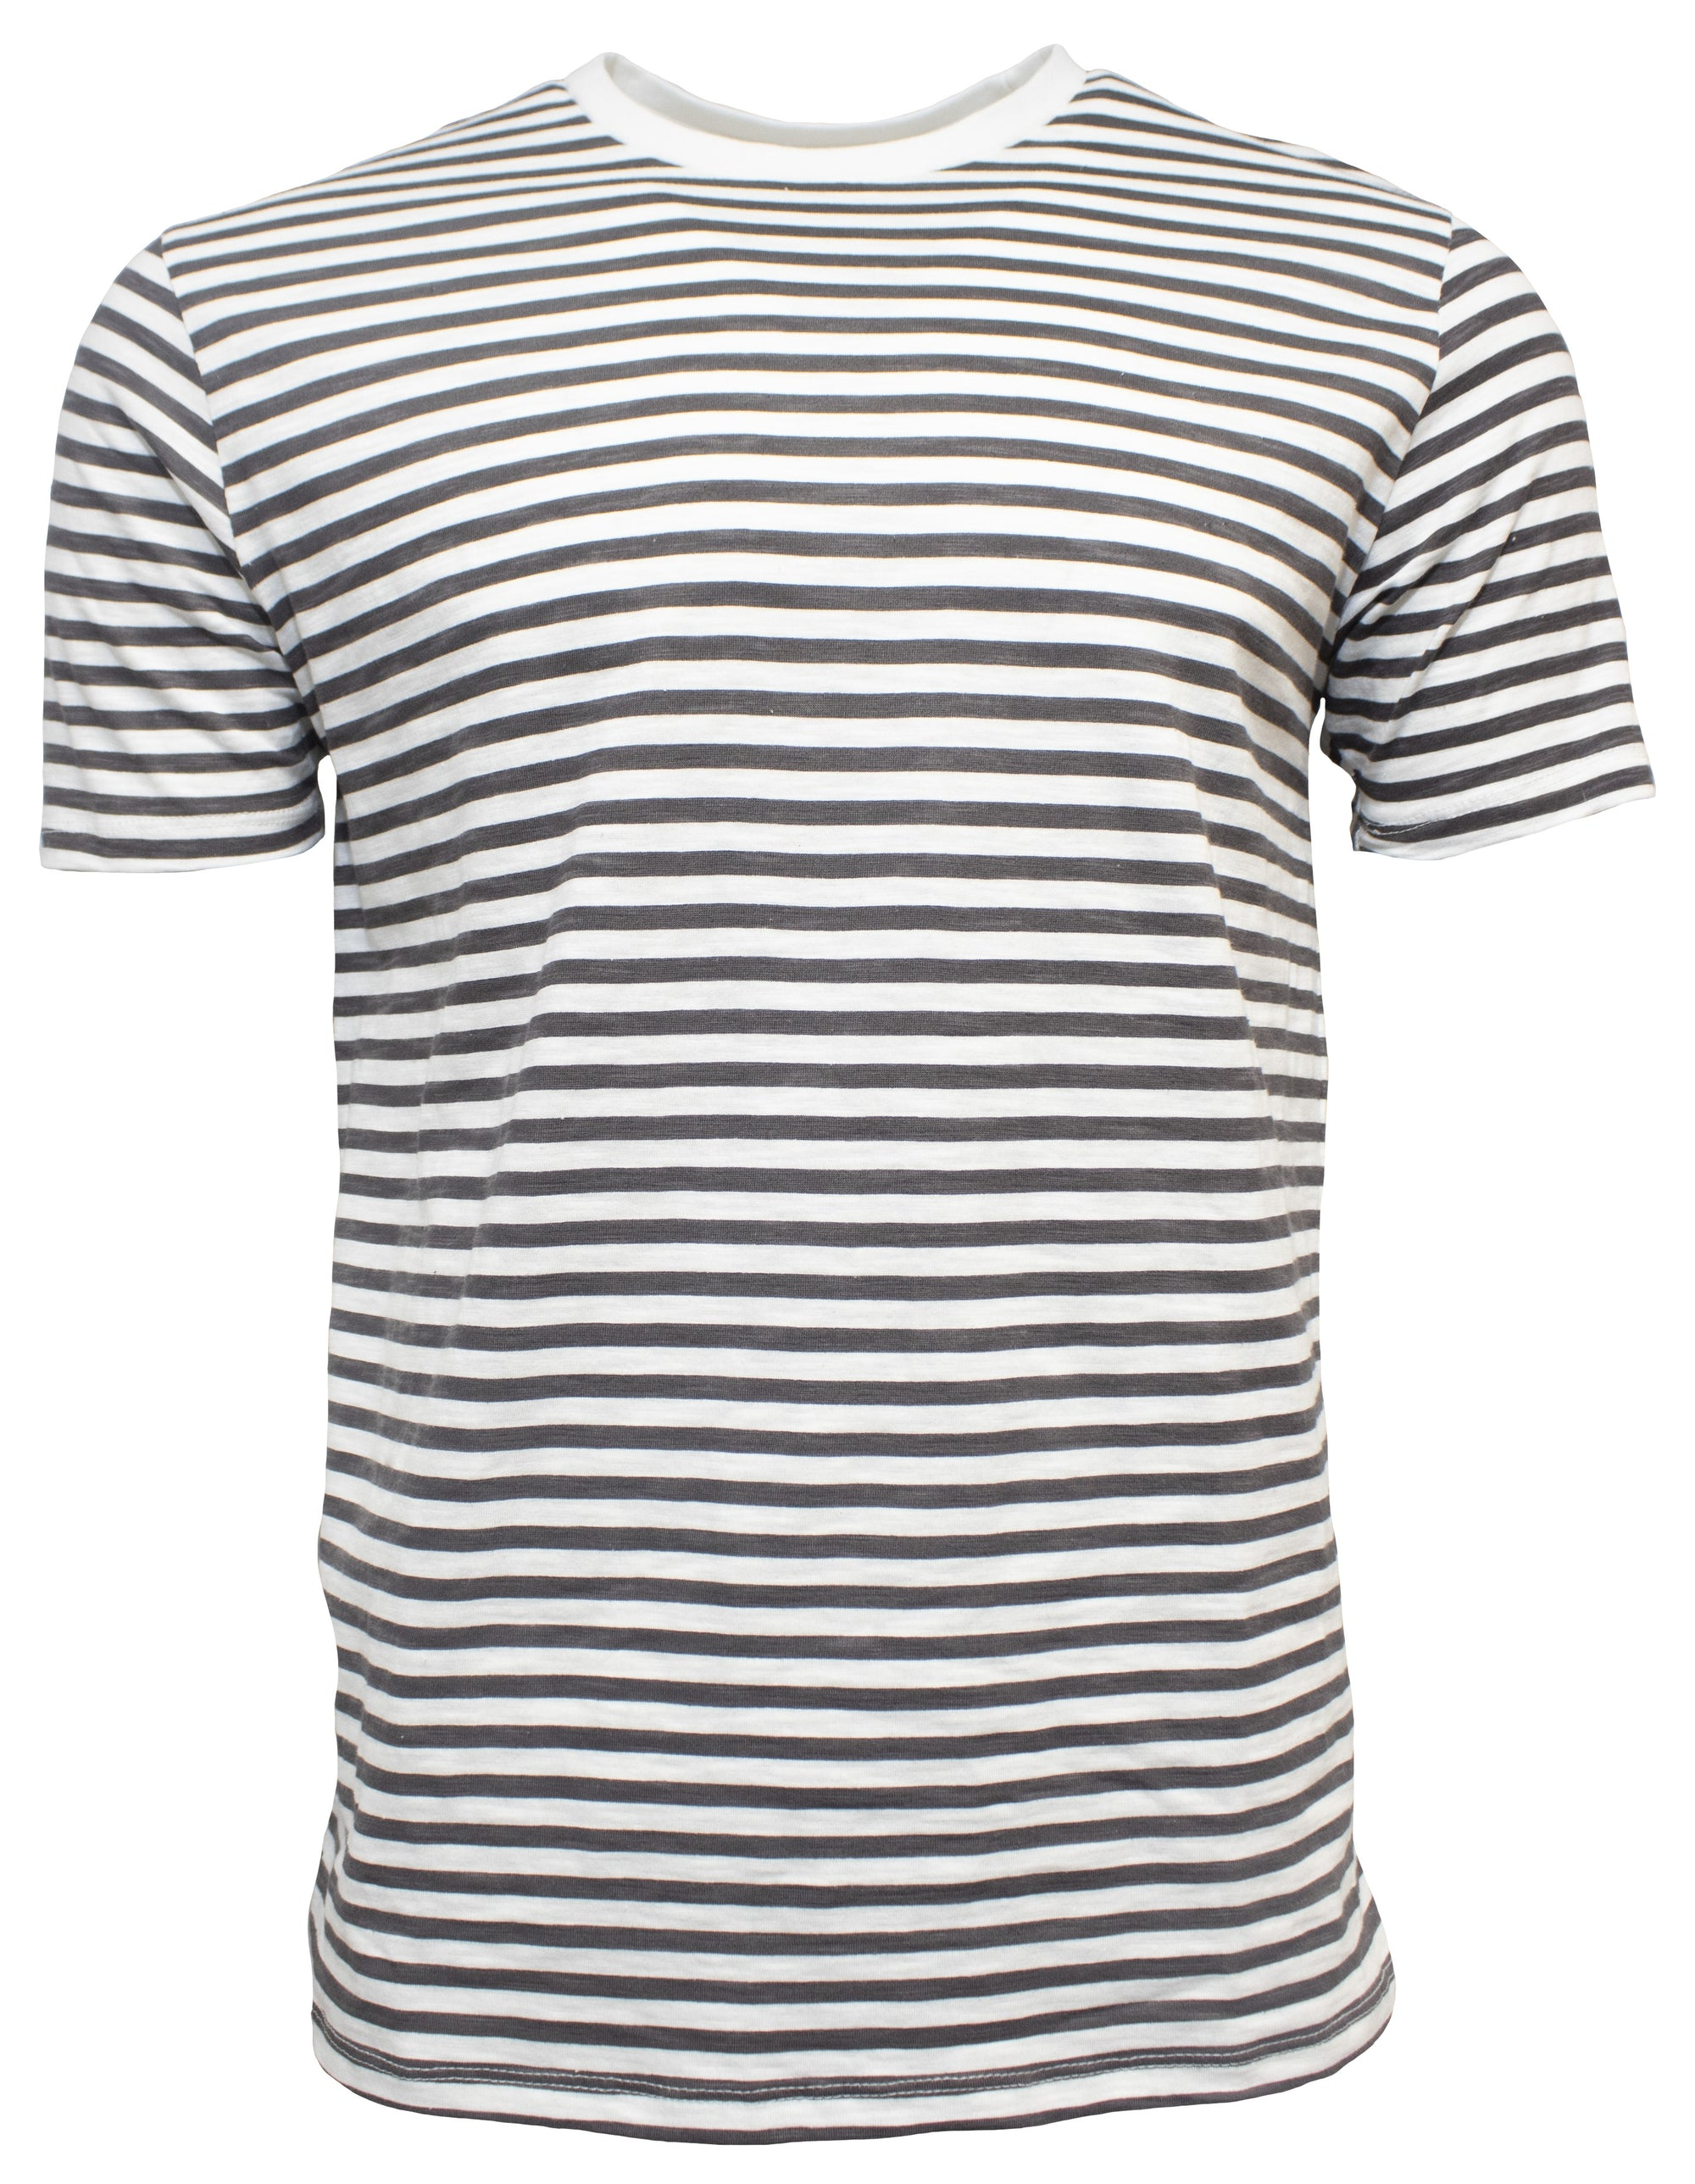 Industrie The Kitts Stripe Tee